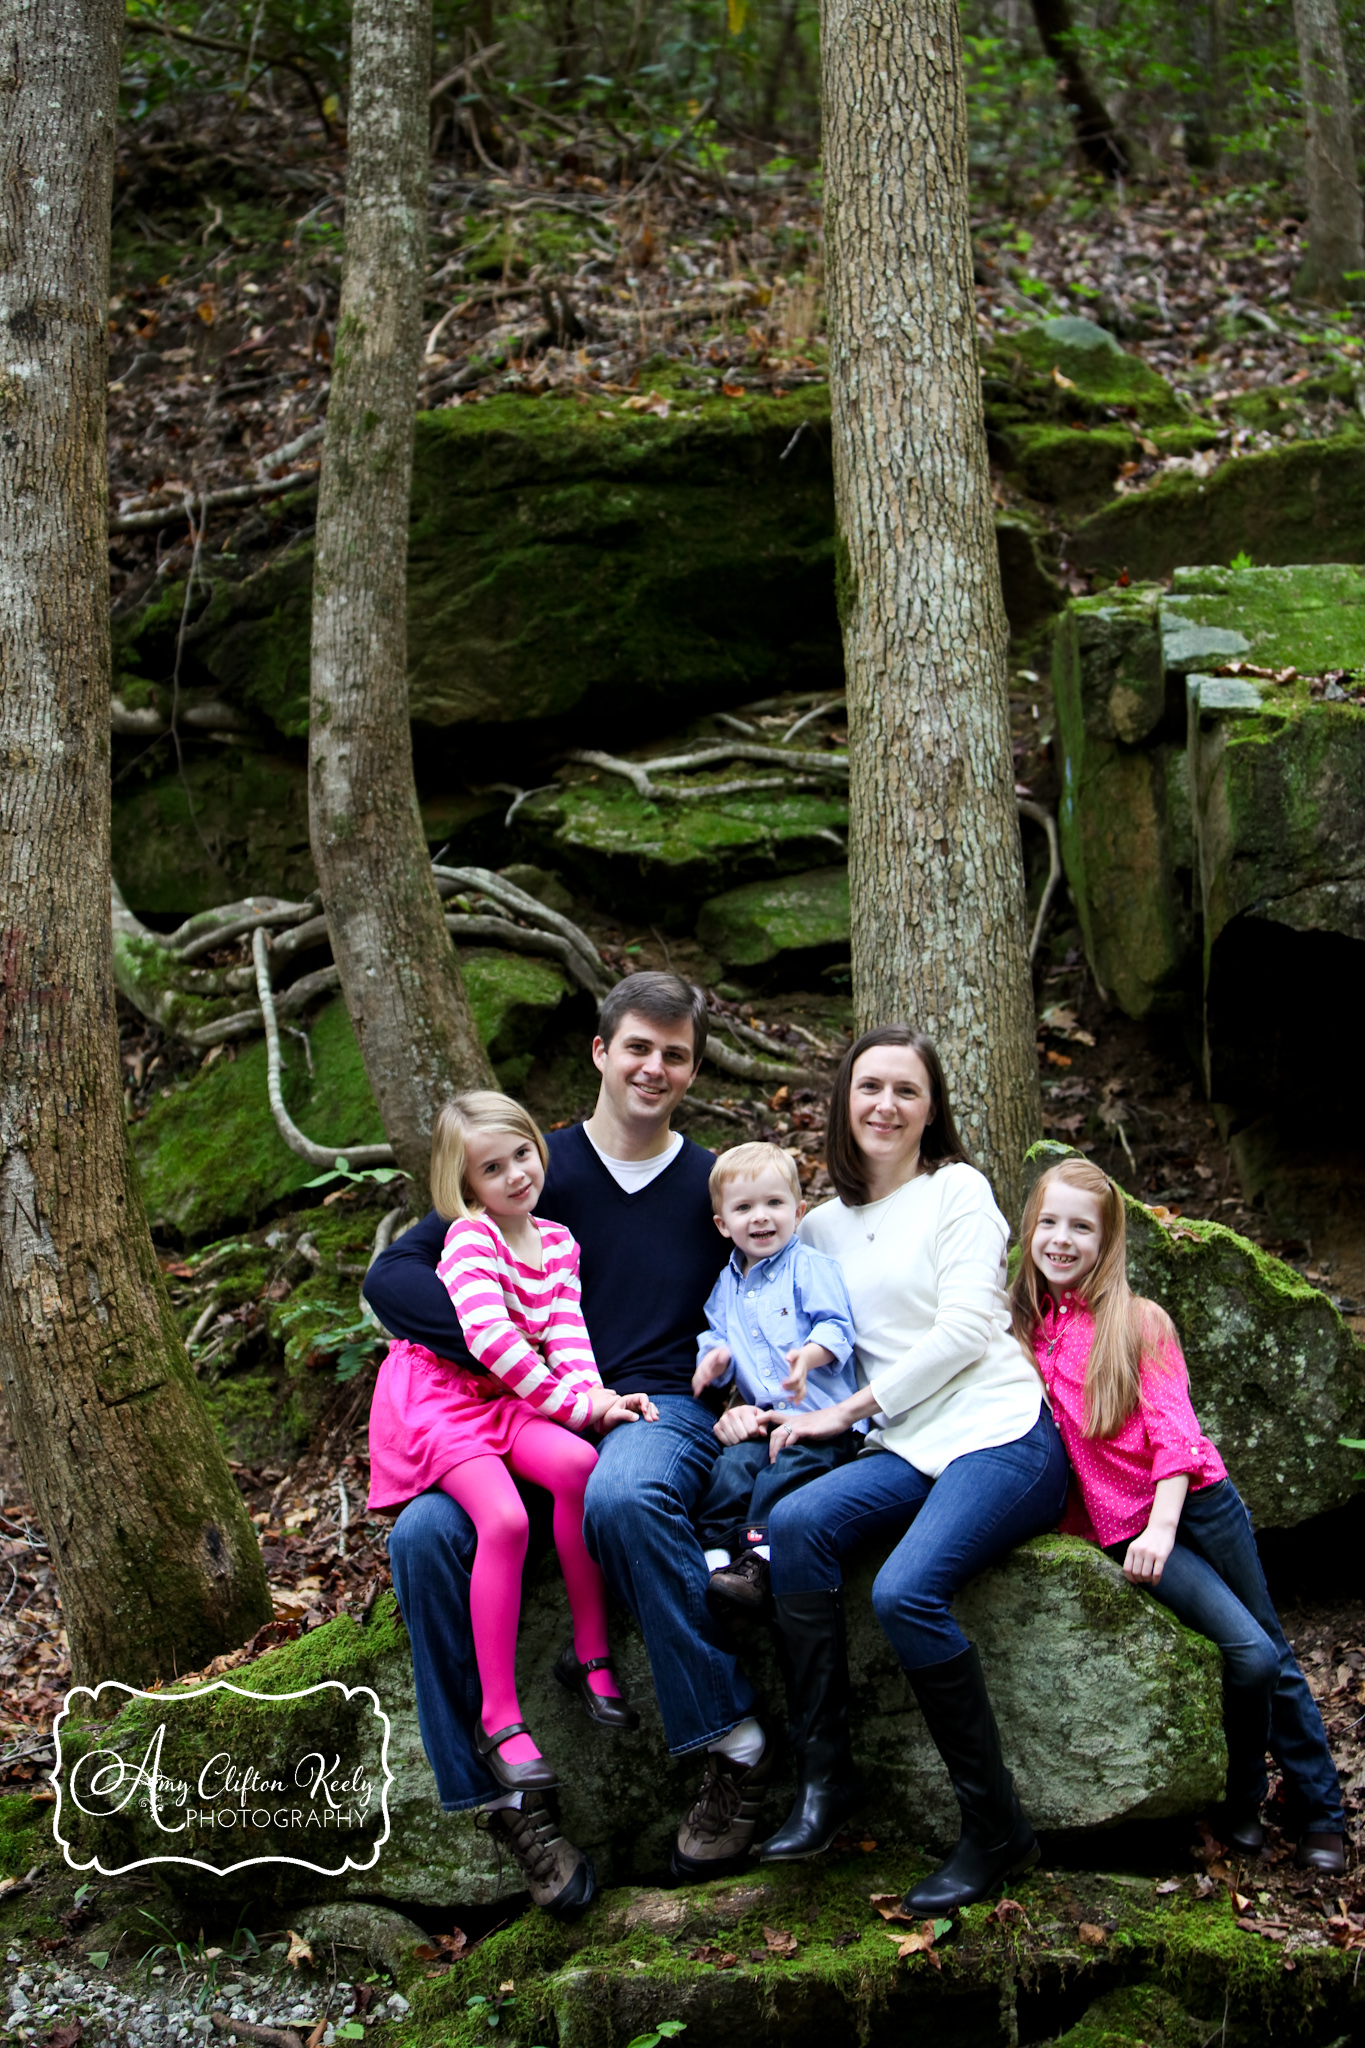 Poinsett Bridge Greenville SC Family Portraits Amy Clifton Keely Photography 01